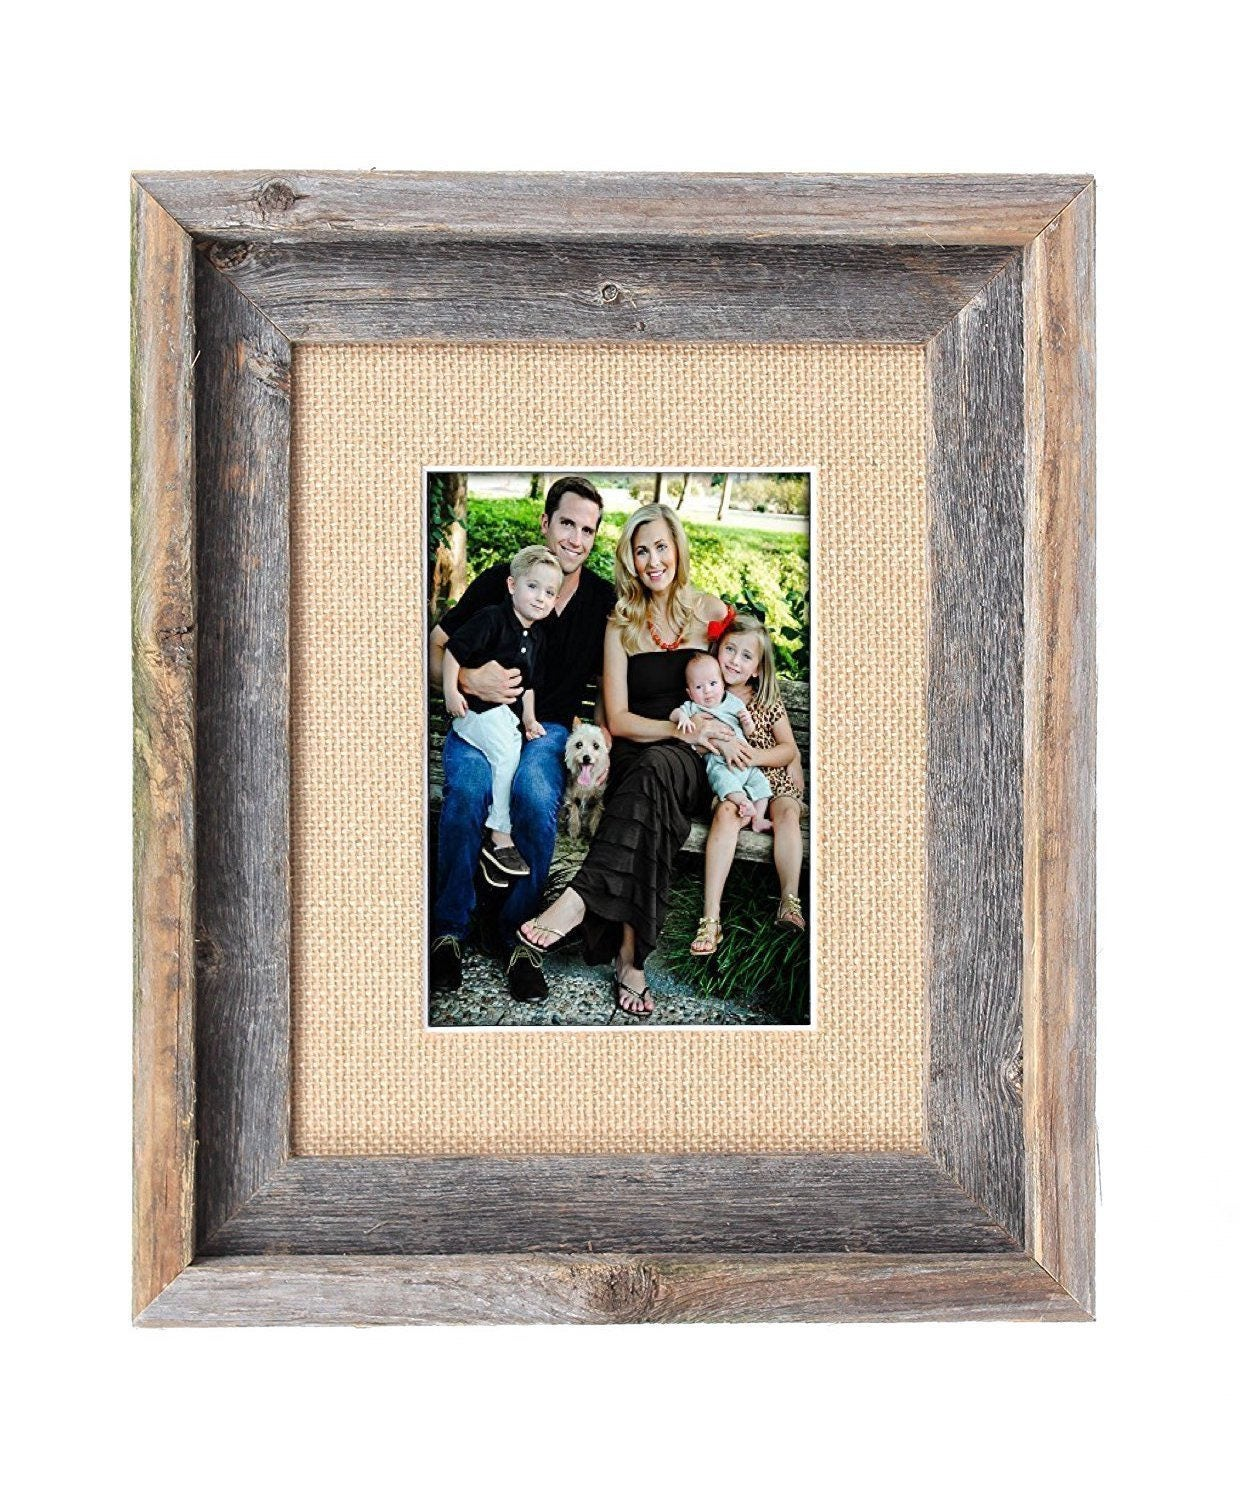 Barnwoodusa 16x20 Inch Signature Picture Frame For 11x14